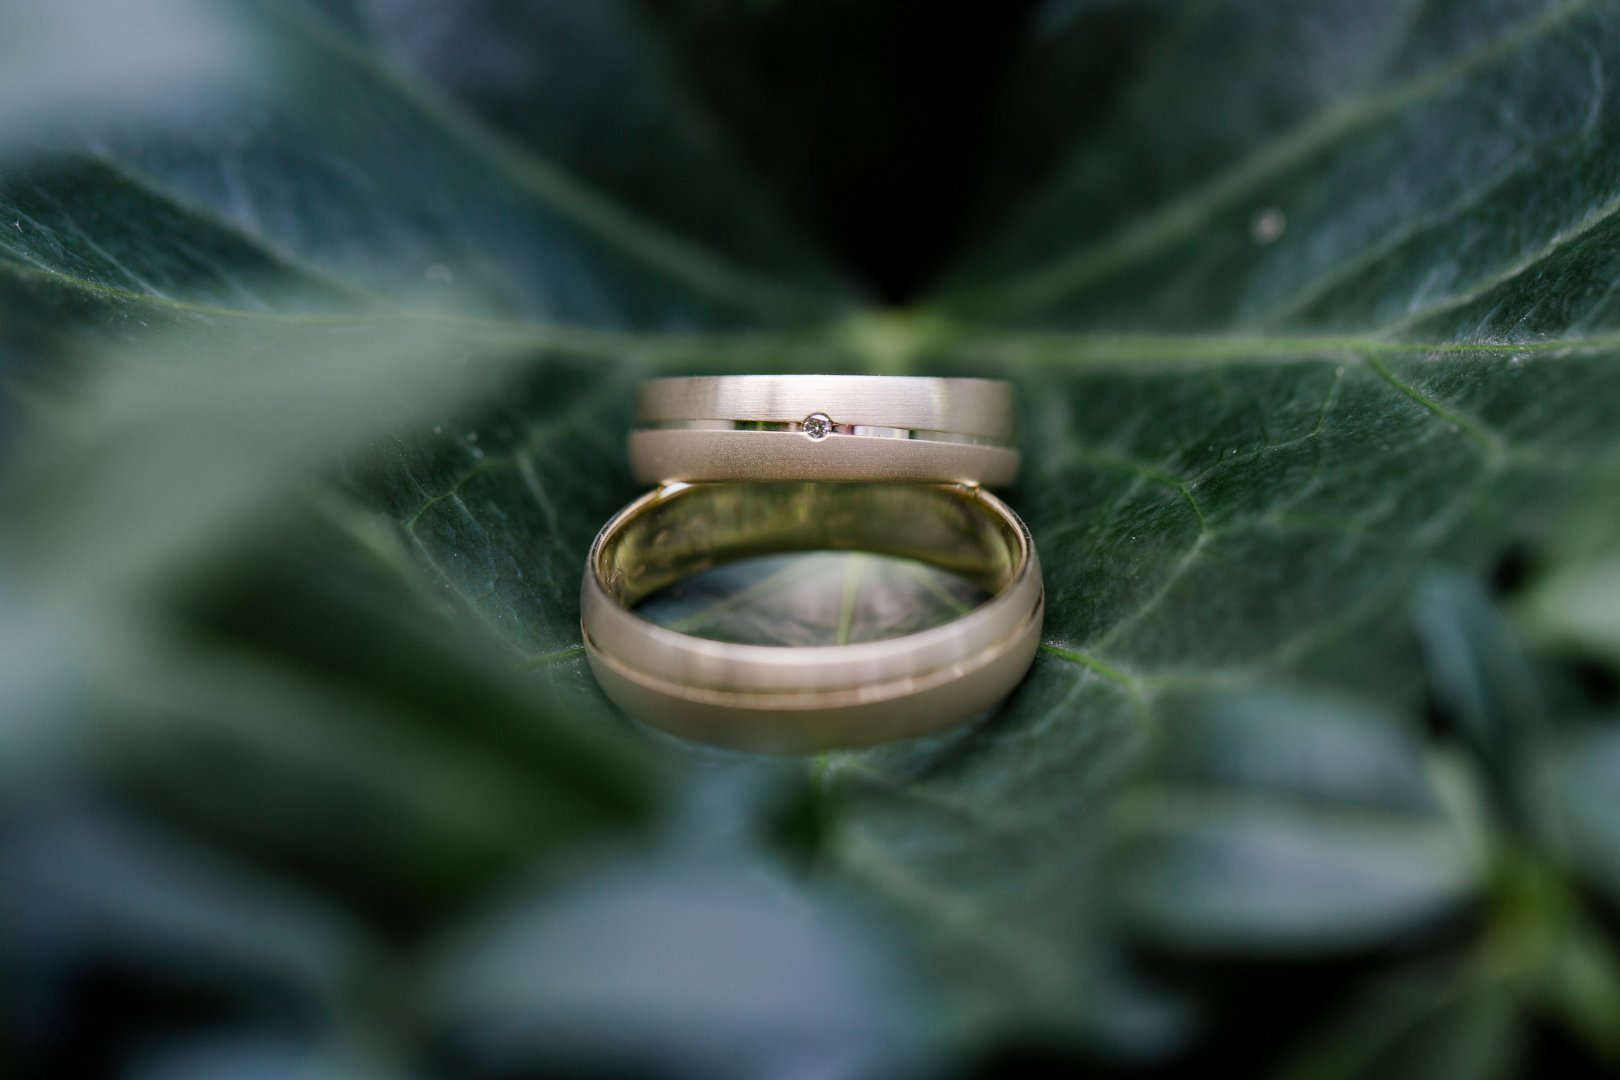 Green Wedding ceremony supply Ring Macro photography Wedding ring Fashion accessory Close-up Leaf Jewellery Photography Stock photography Still life photography Engagement ring Circle Metal